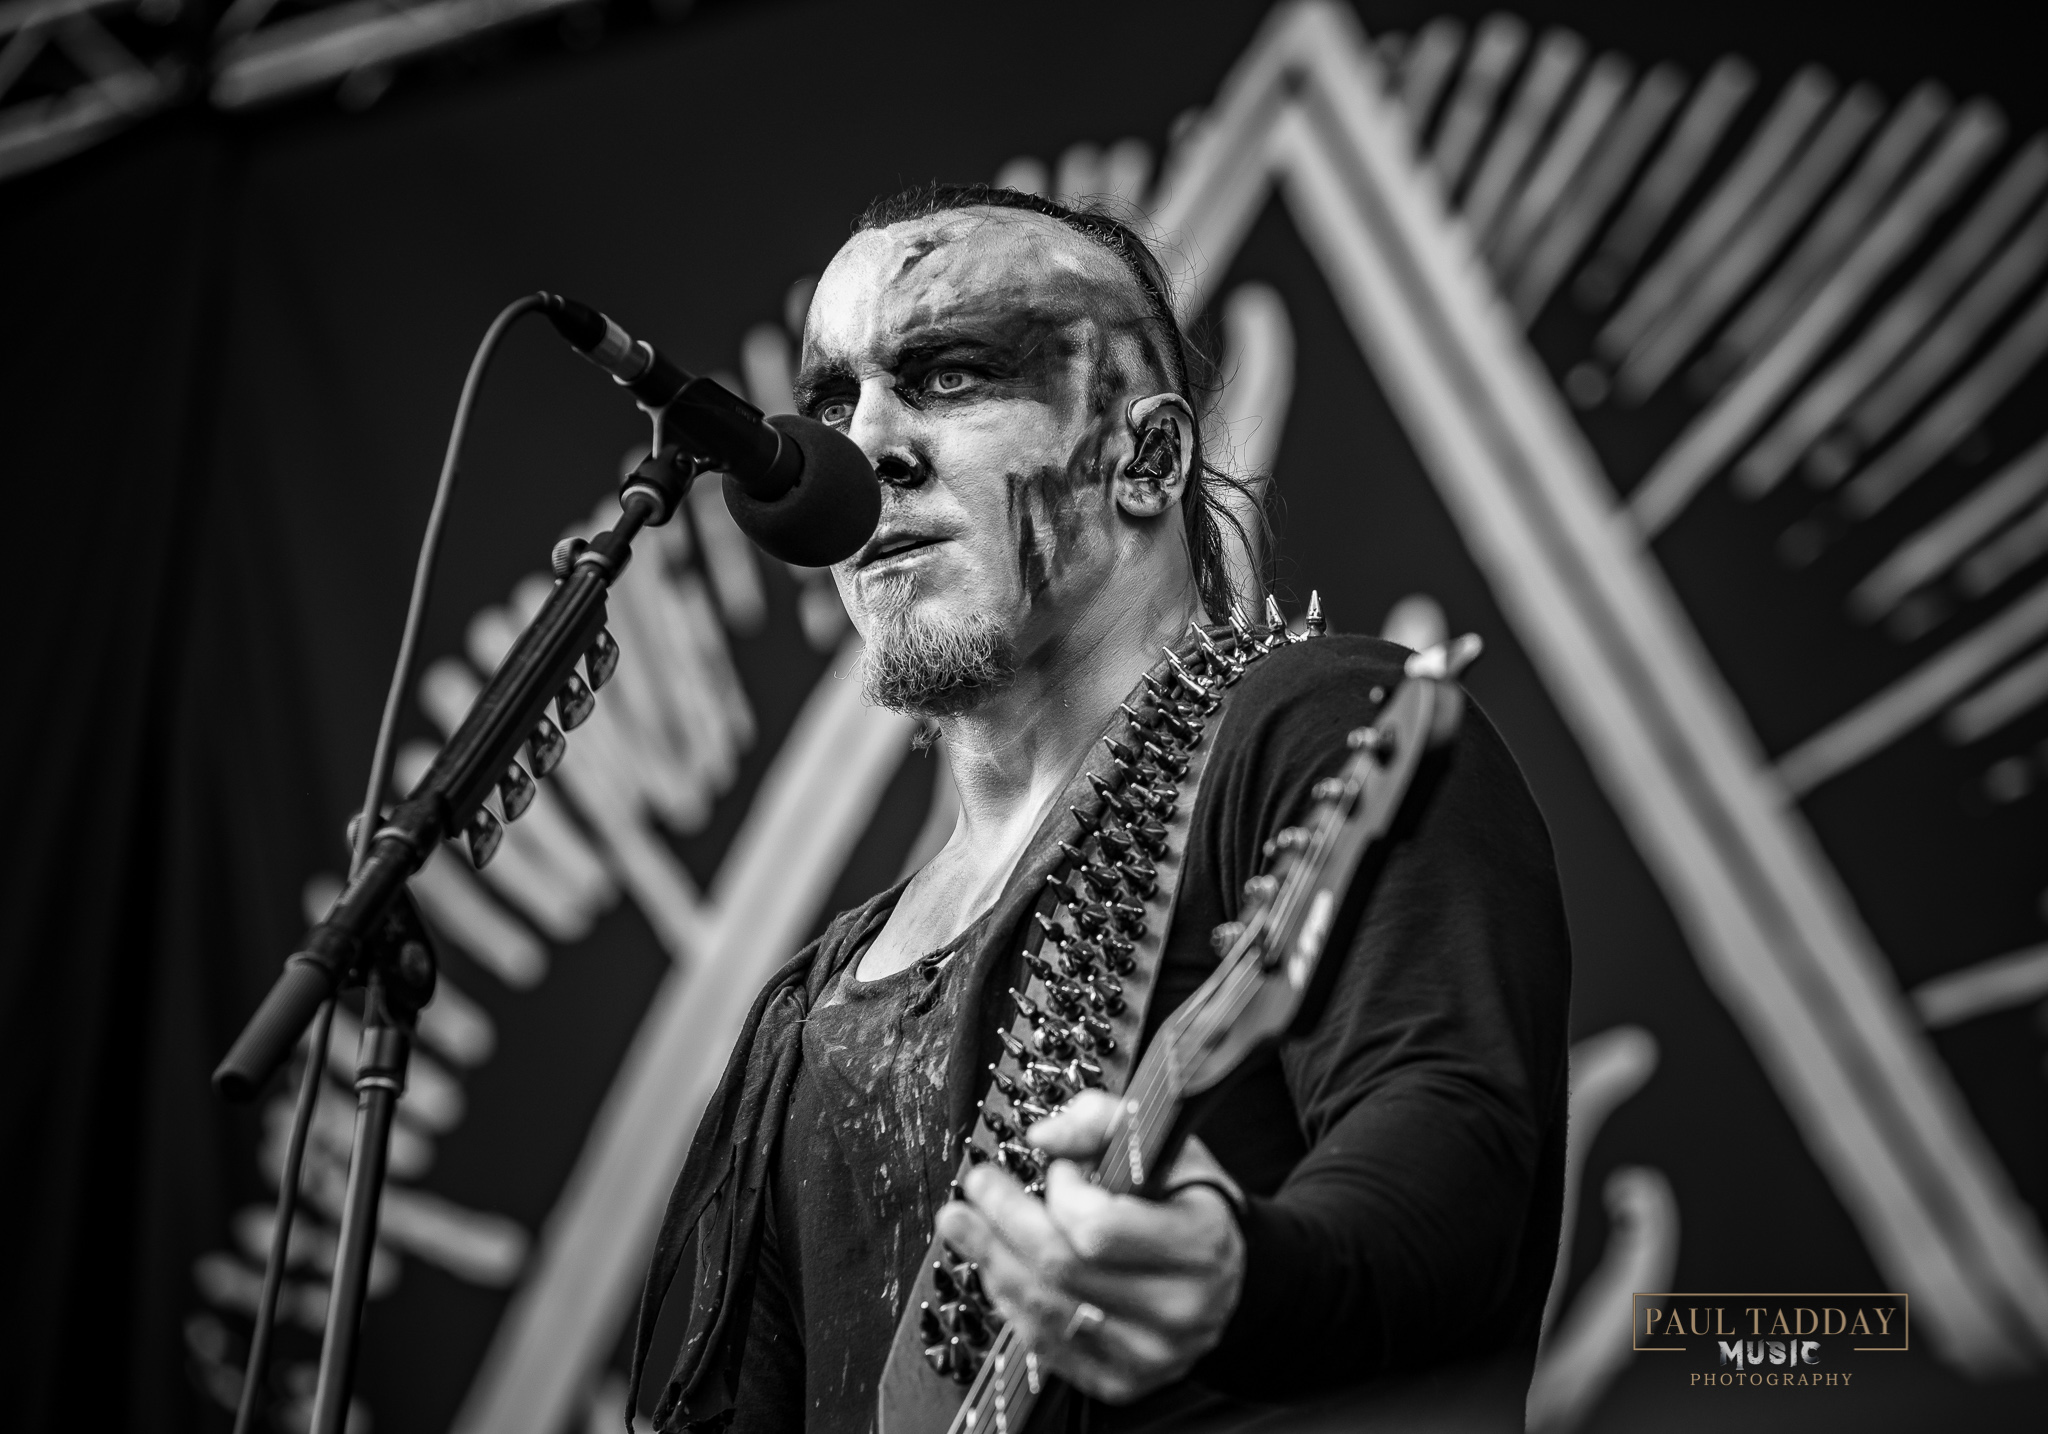 behemoth - download melbourne - march 2019 - web - paul tadday photography - 19.jpg